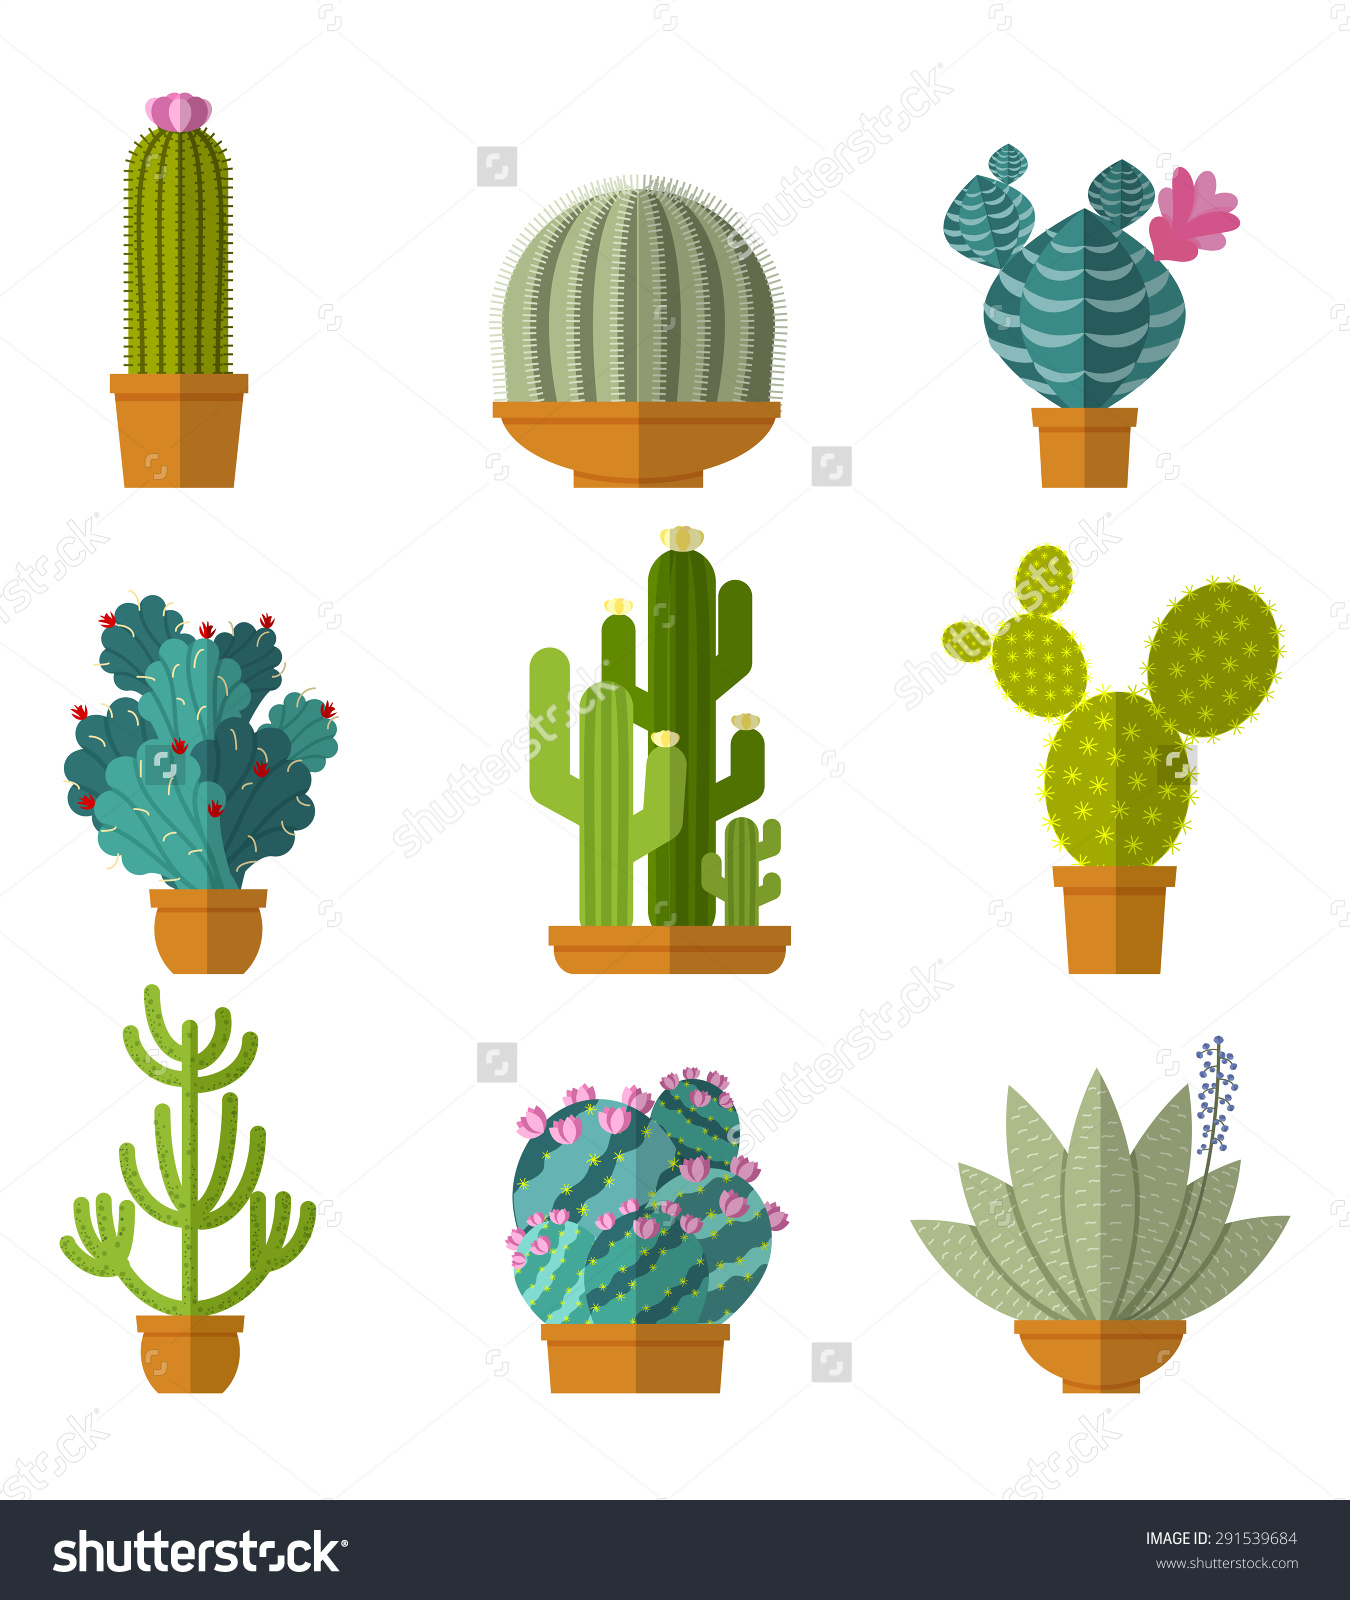 Vector Collection Cactus Flat Style Green Stock Vector 291539684.